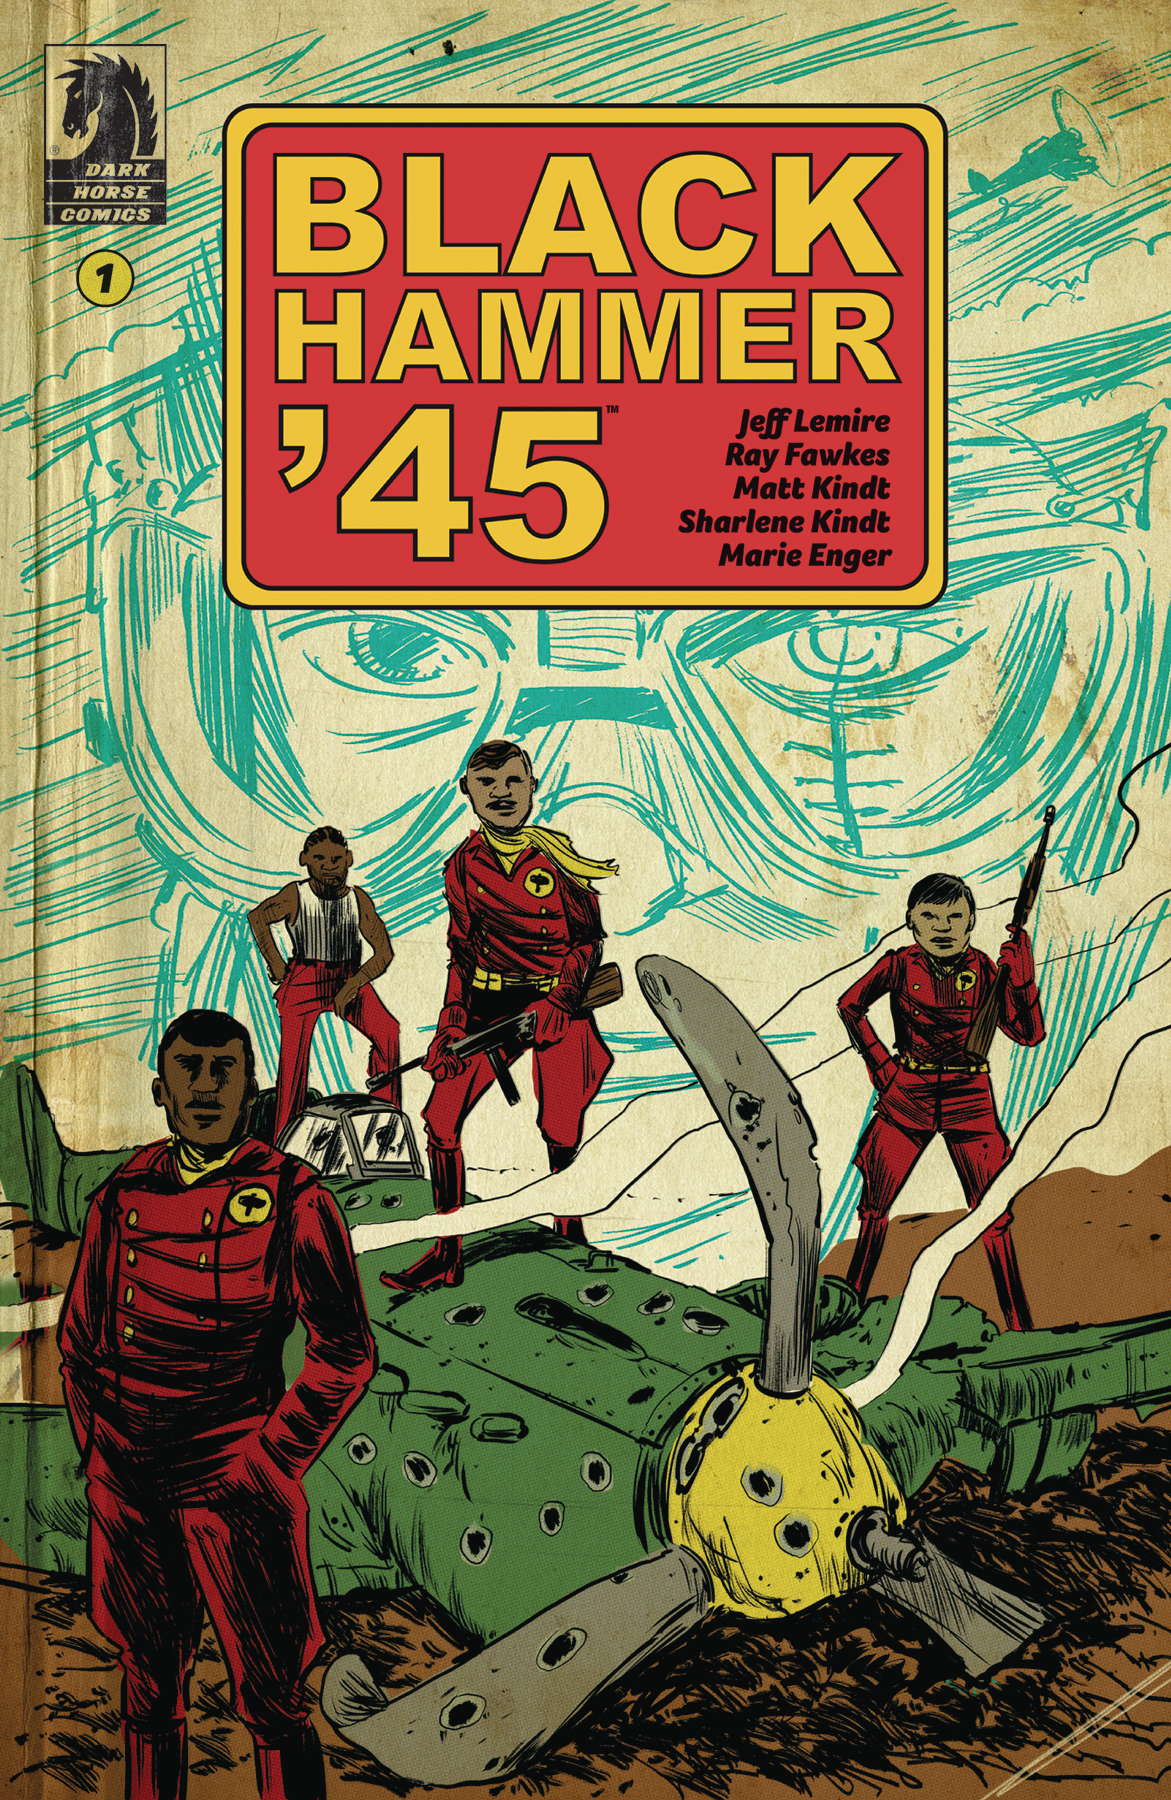 BLACK HAMMER 45 FROM WORLD OF BLACK HAMMER #1 CVR A KINDT (O